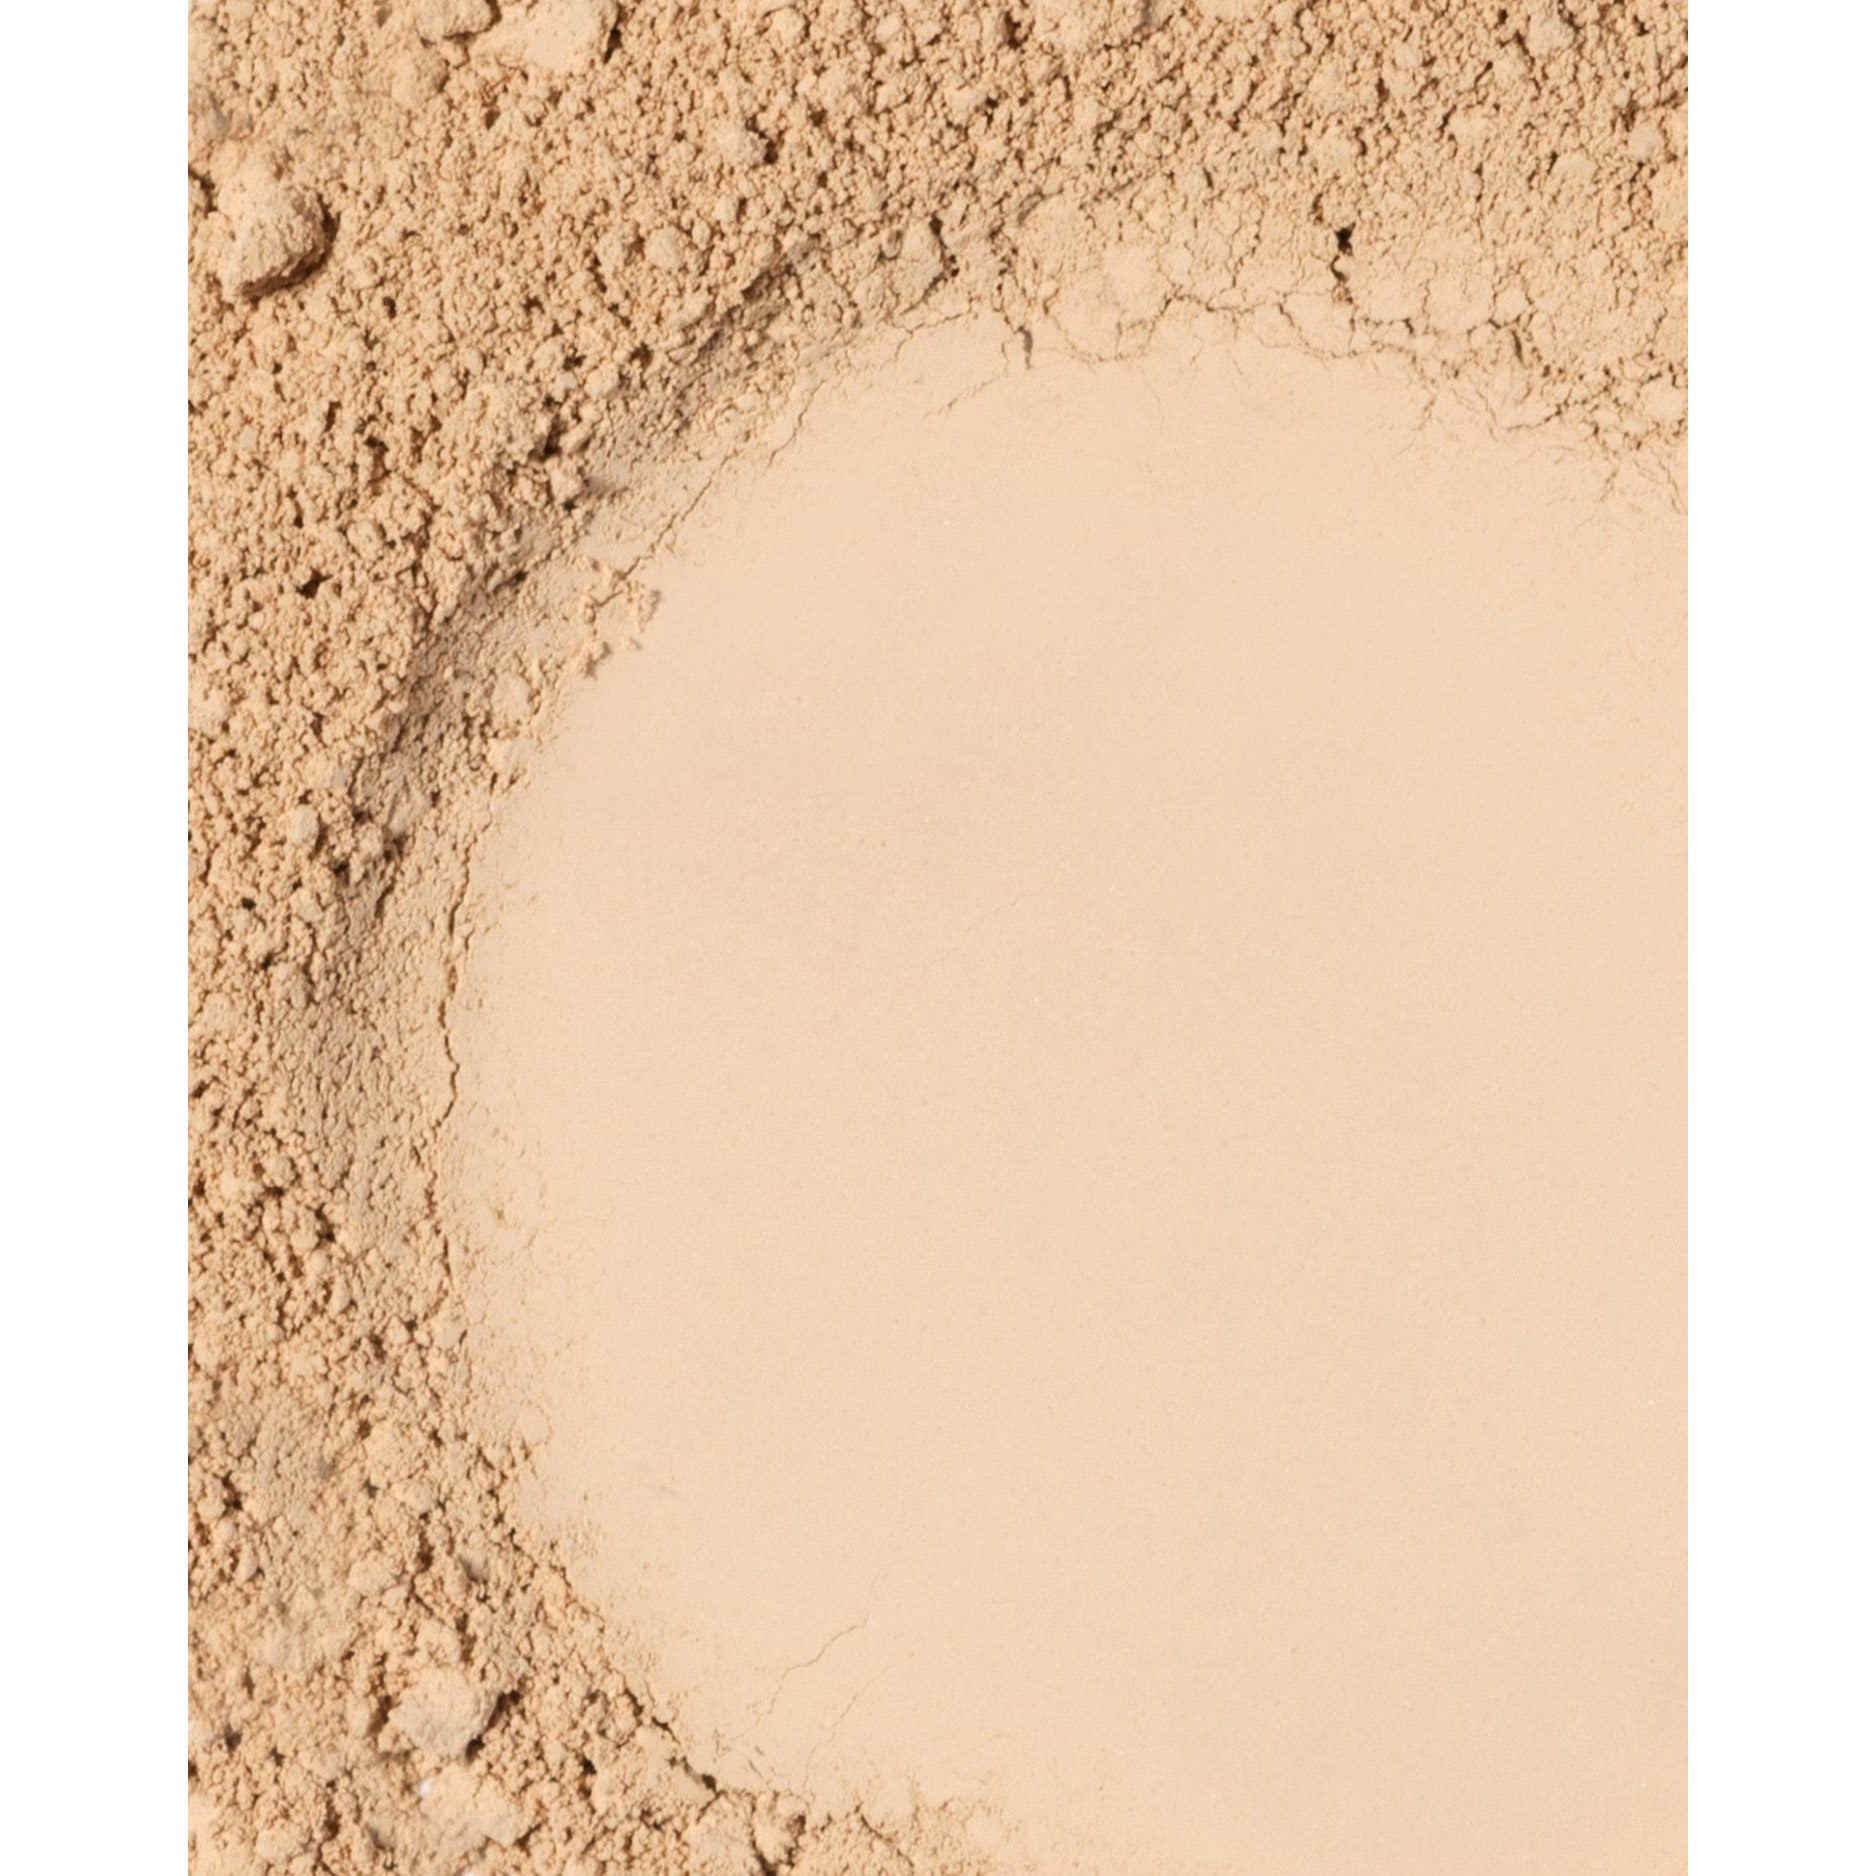 Whimsical - Omiana Loose Powder Mineral Foundation No Titanium Dioxide and No Mica